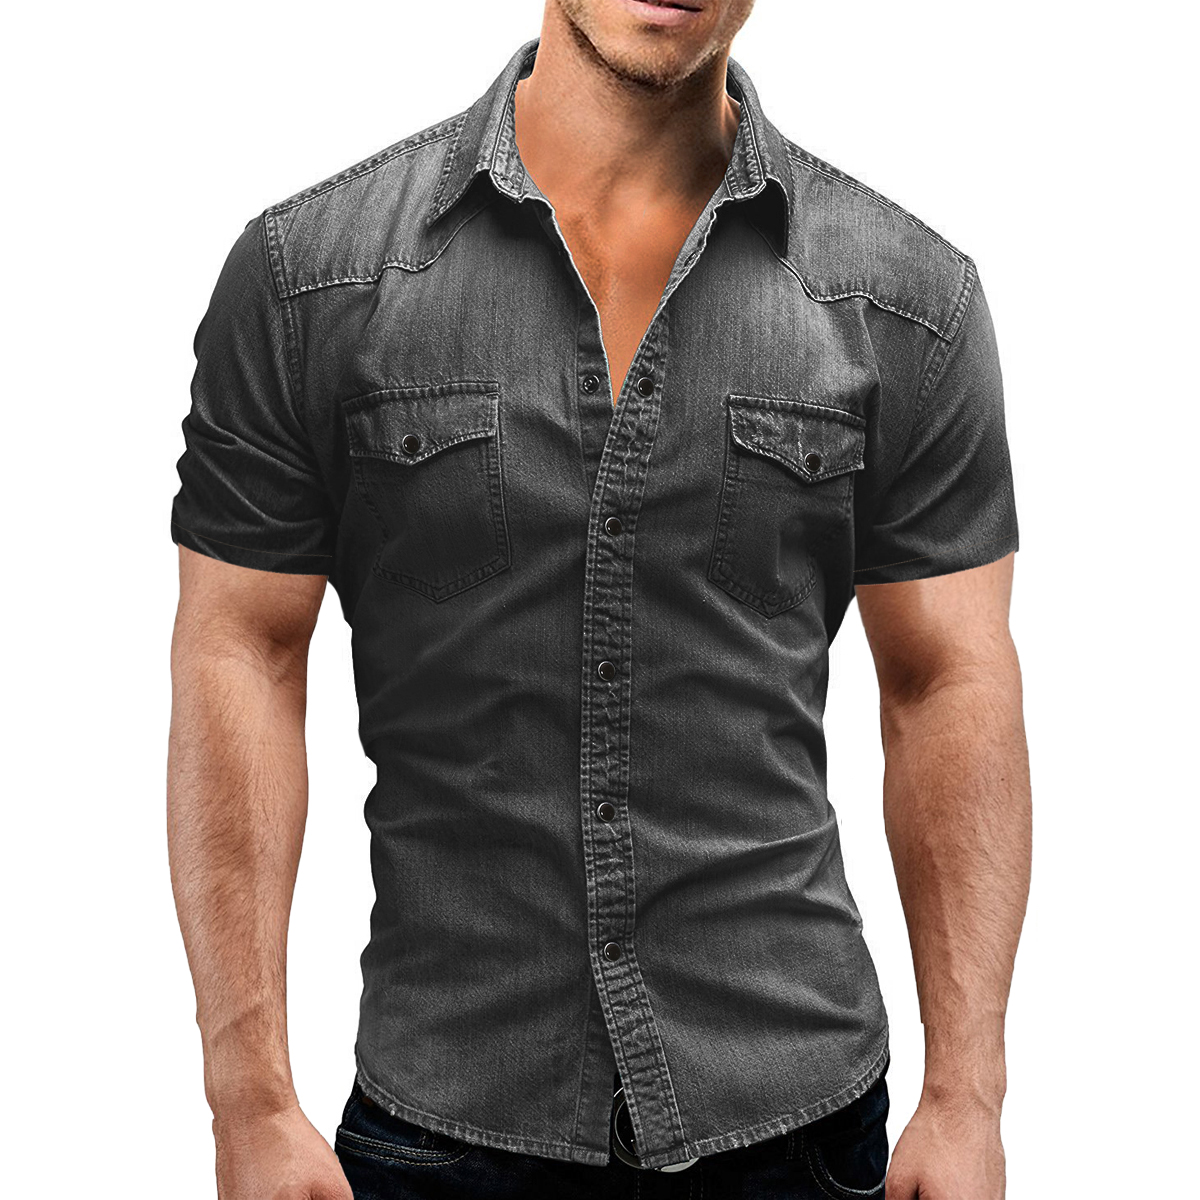 Men's Regular-fit Long-Sleeve Denim Work Shirt Two Button Front Chest Pockets & Pencil Slot Rugged Wear Thin Casual Cotton Shirts 2